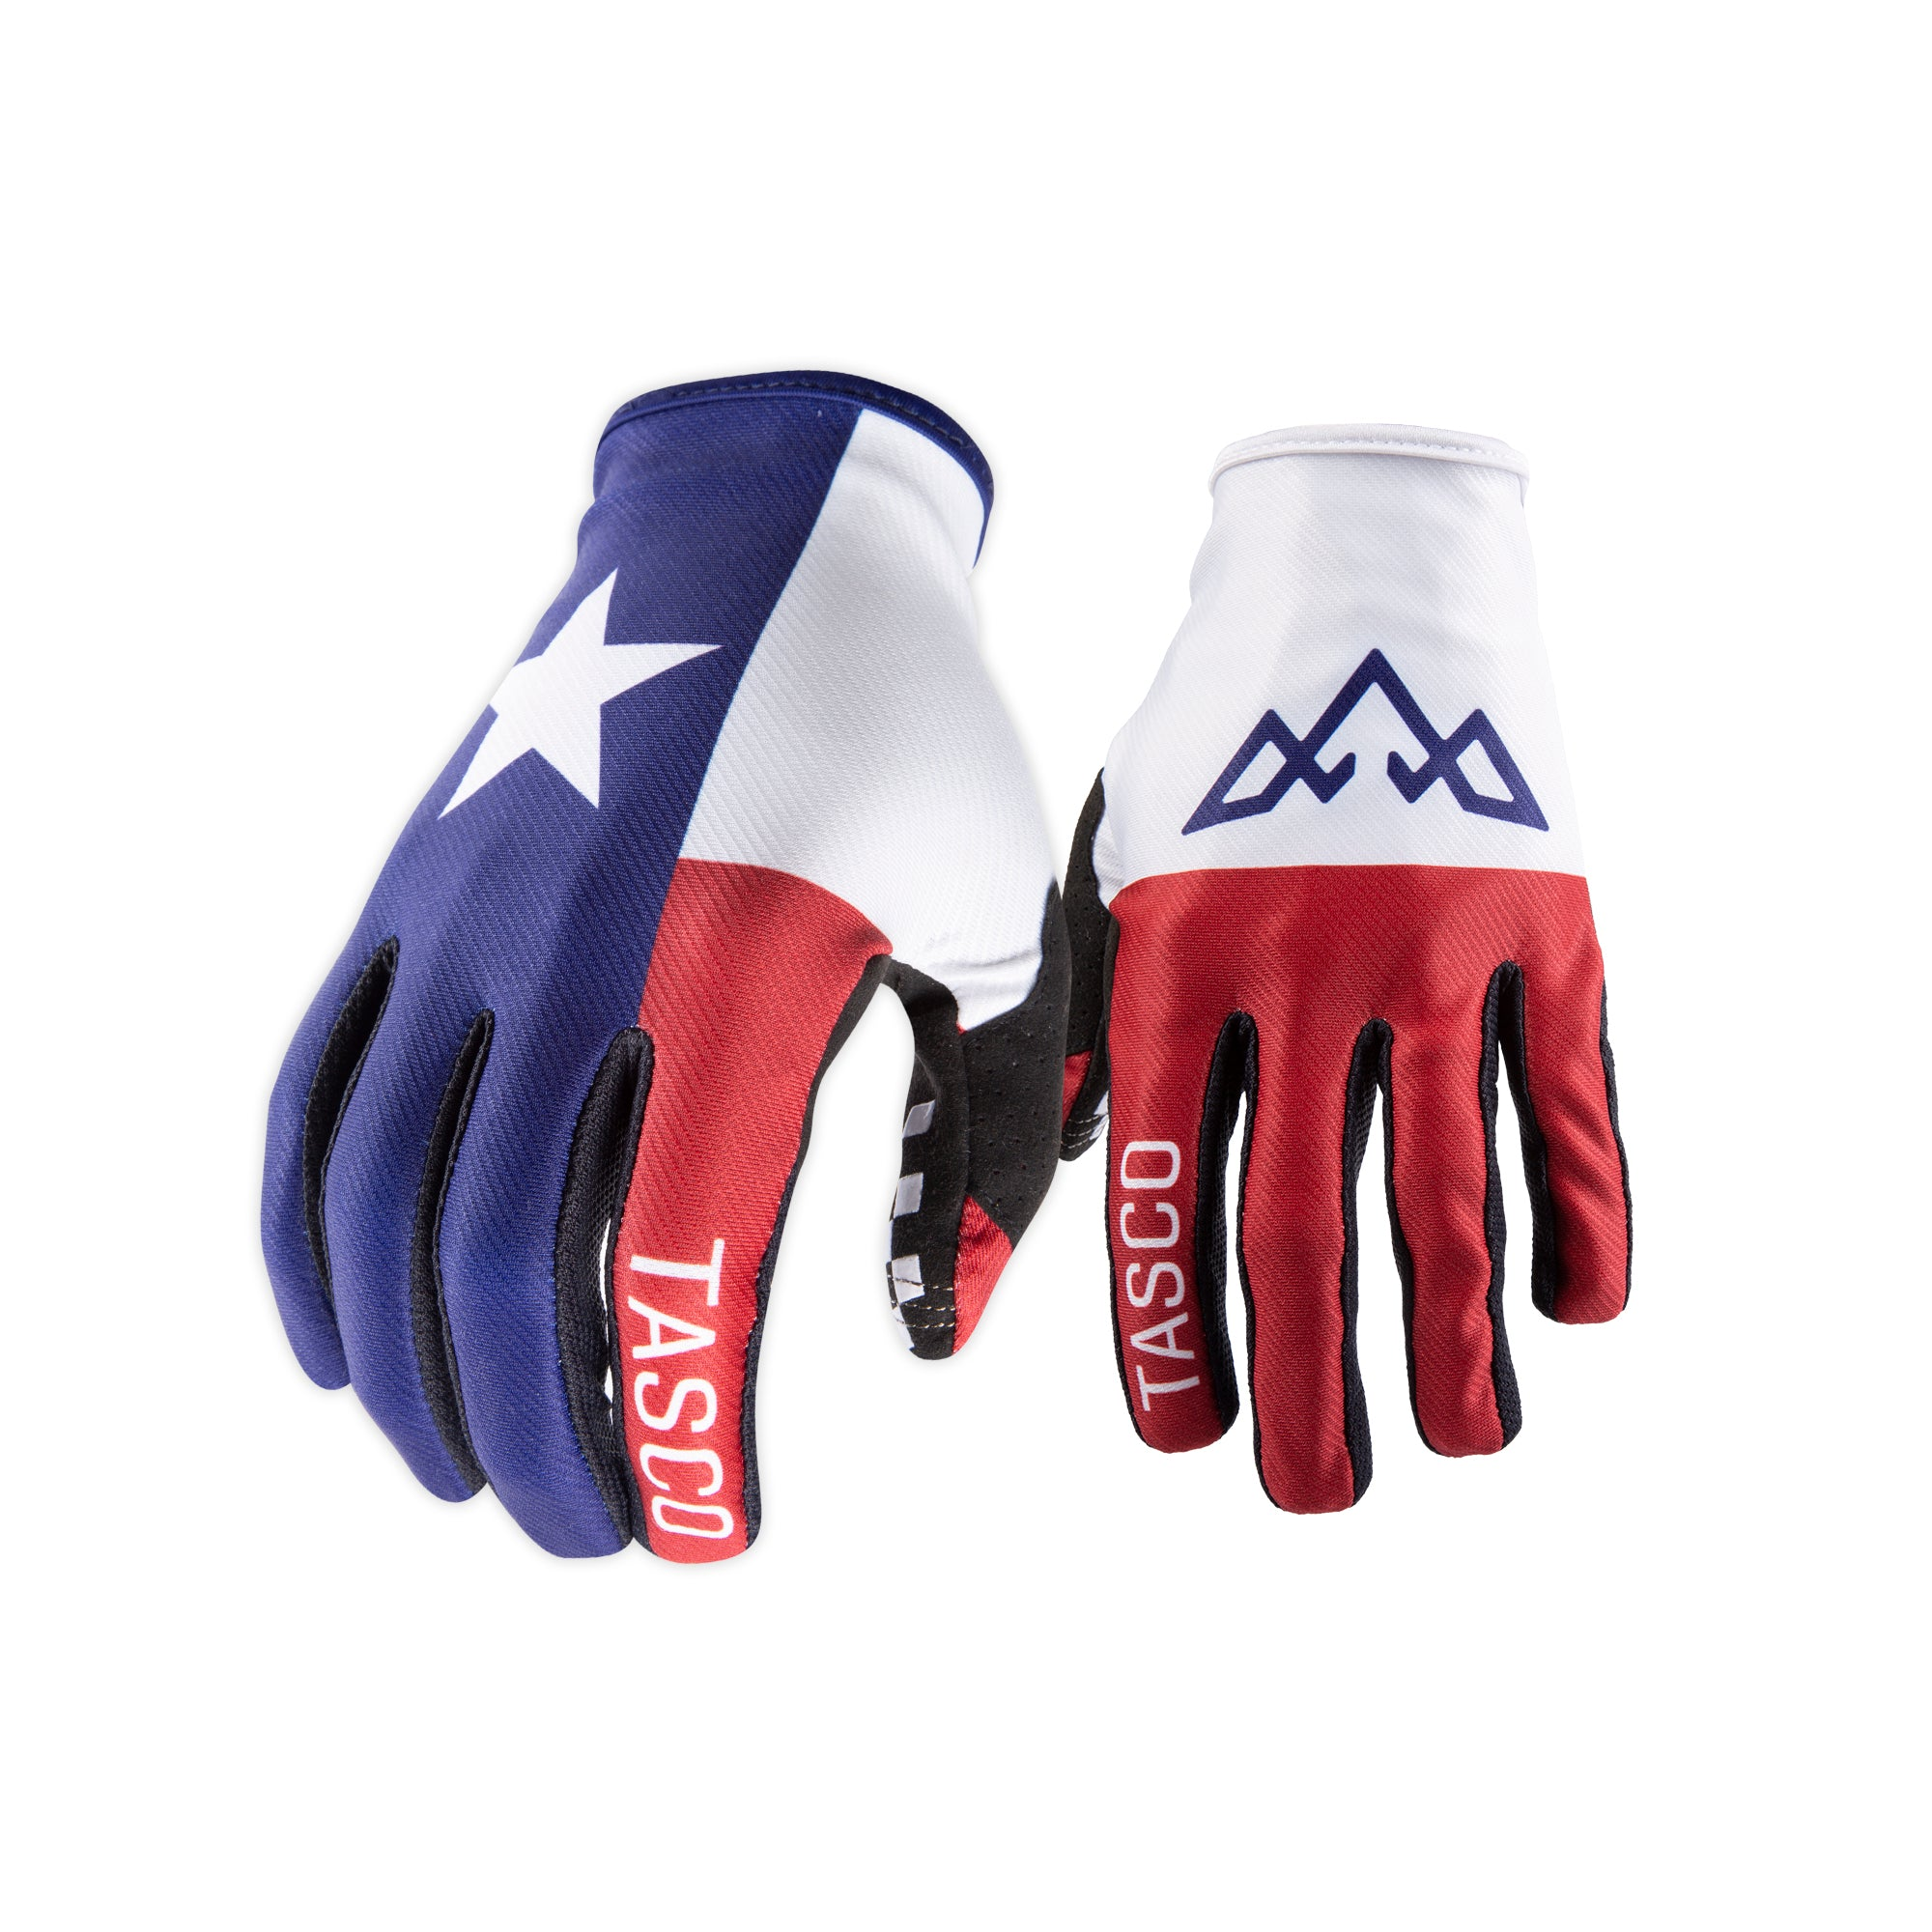 Longhorn Double Digits MTB Gloves - MTB Lifestyle | TASCO MTB